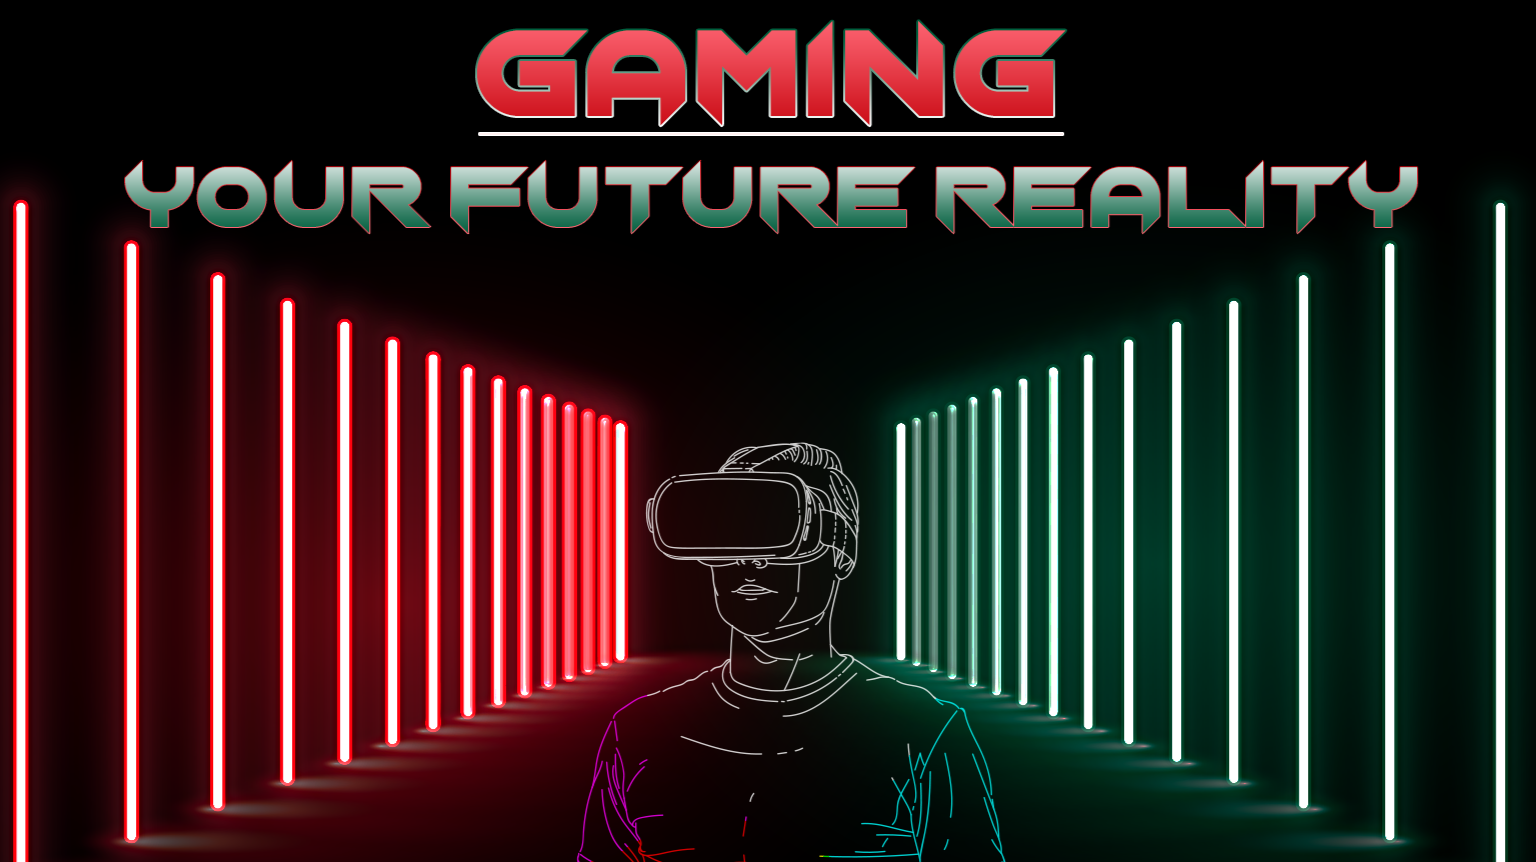 Gaming: Your Future Reality